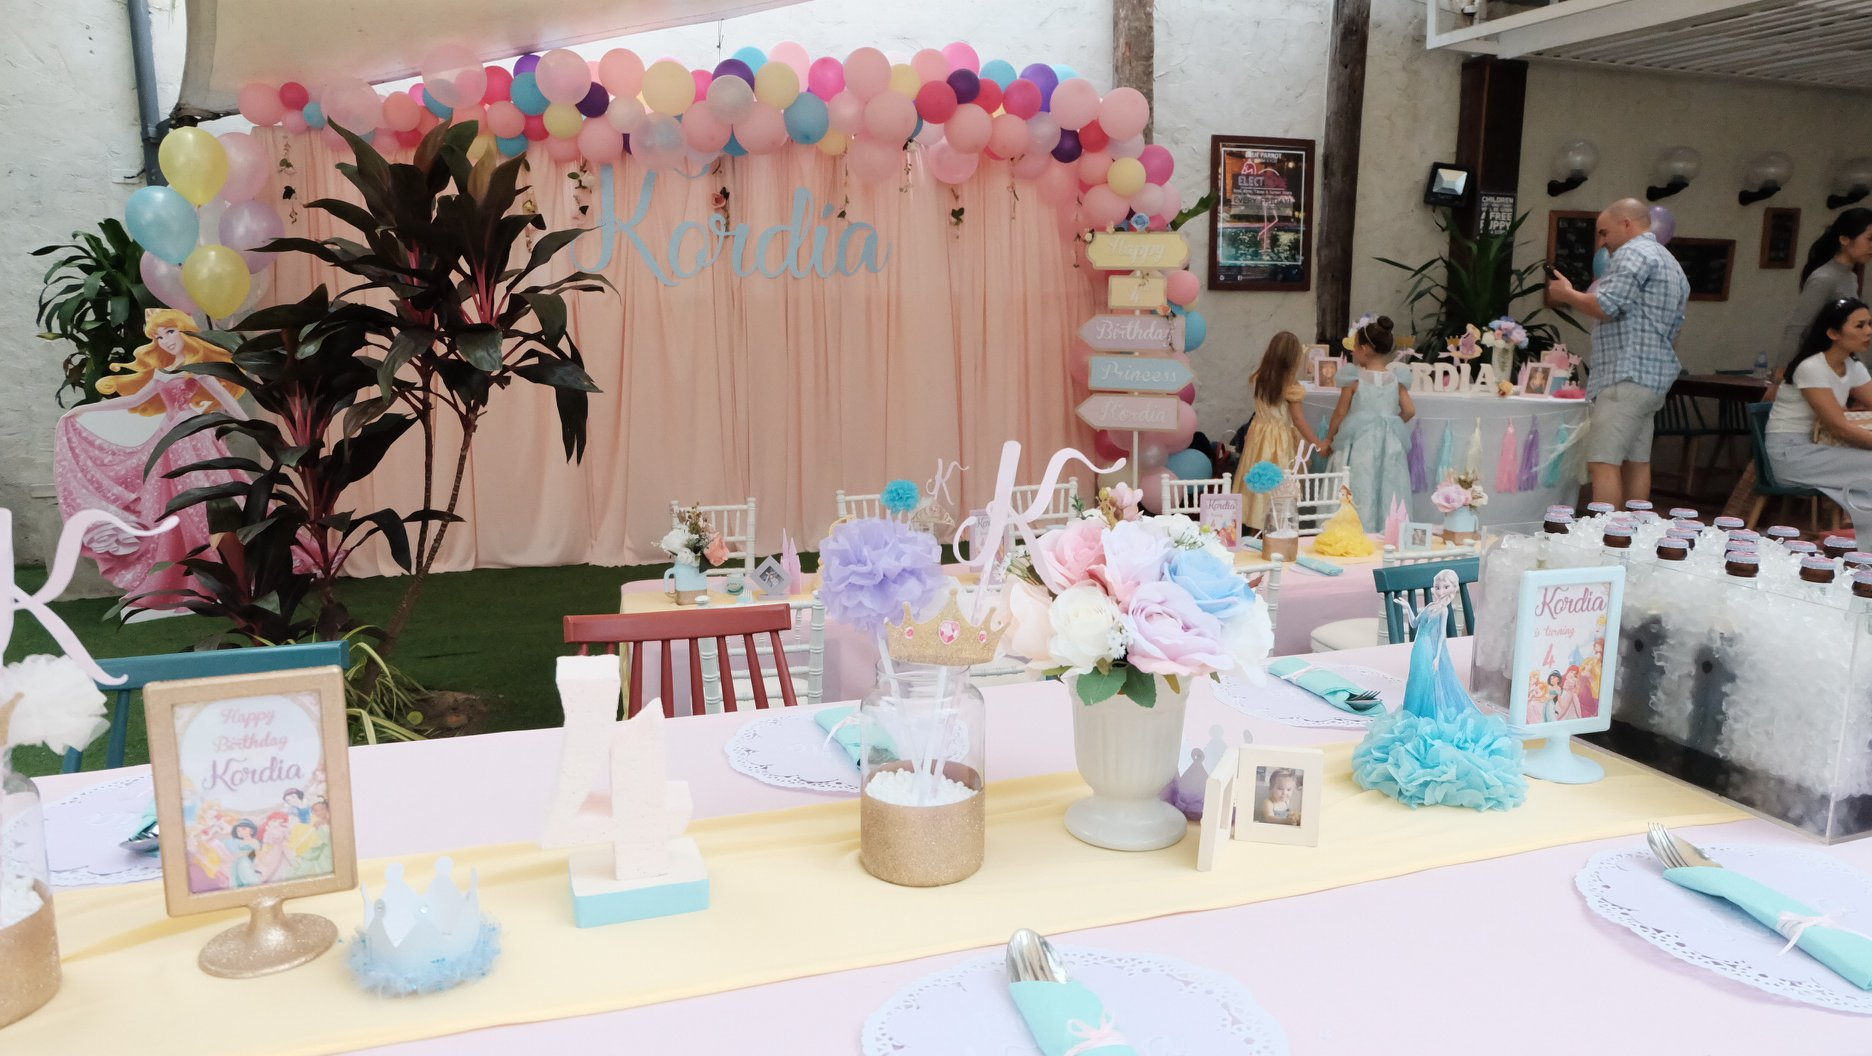 Surprise your girls with favorite birthday party celebration in Disney Princess theme and let us do the castle backdrop, princess balloons, princess mascot, bouncy castle and all you want